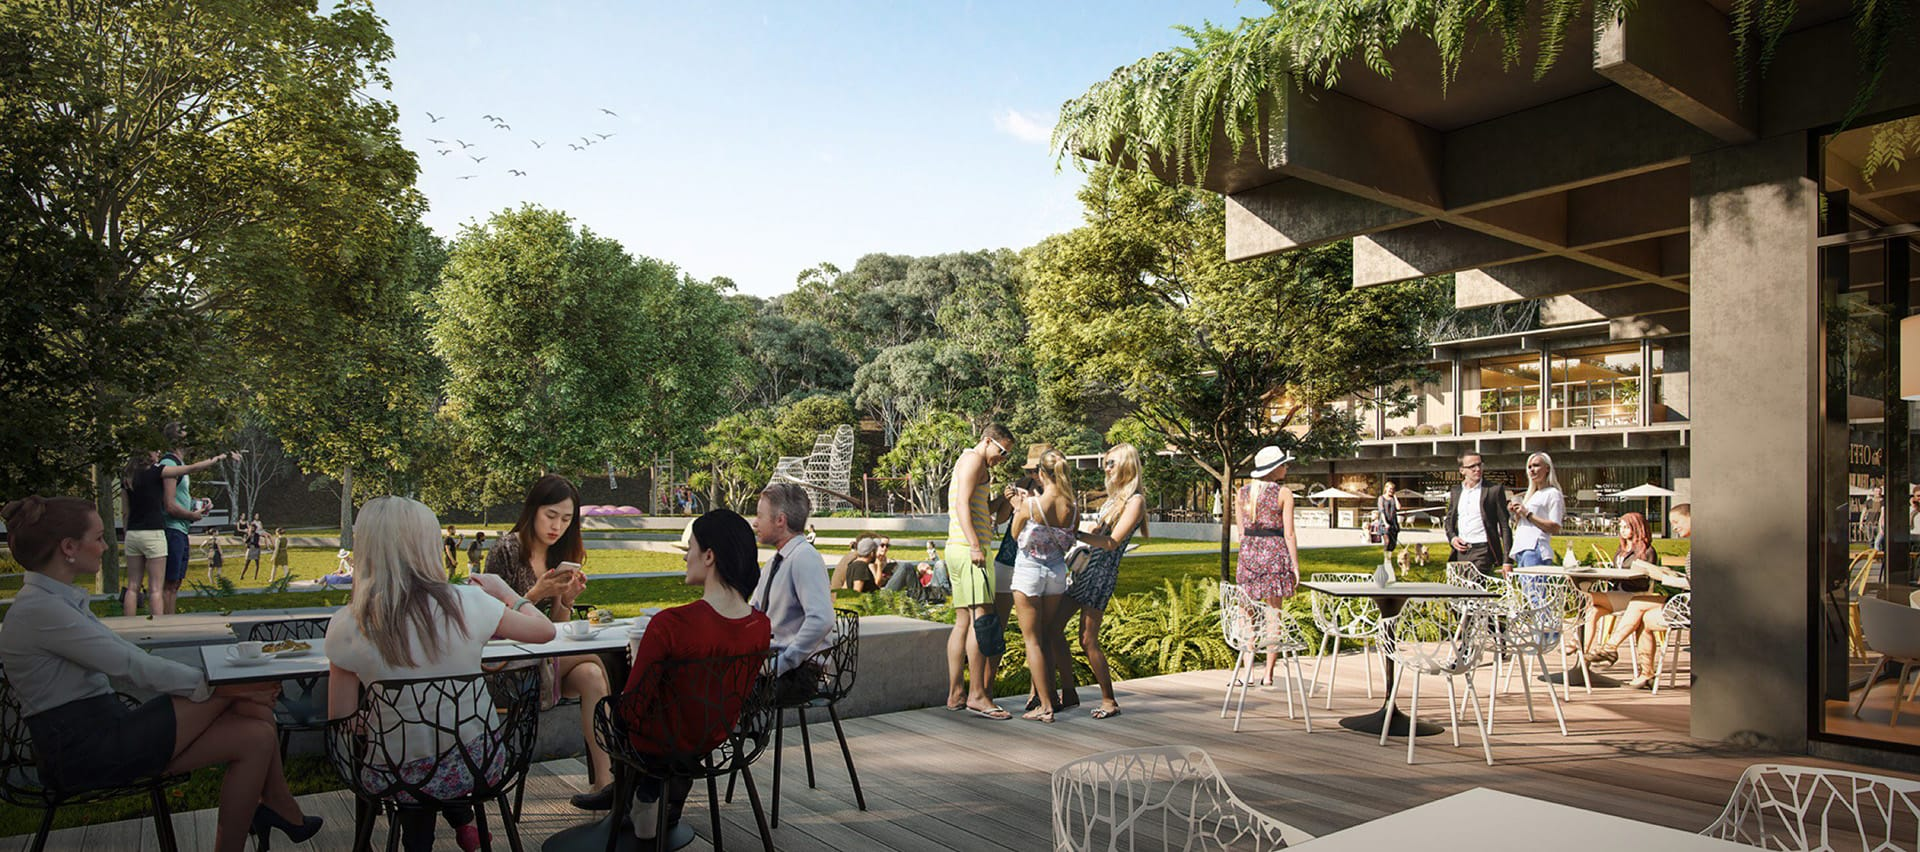 Architecture firm Hassell was appointed to undertake the masterplanning of the 19-hectare Yaroomba Beach site.